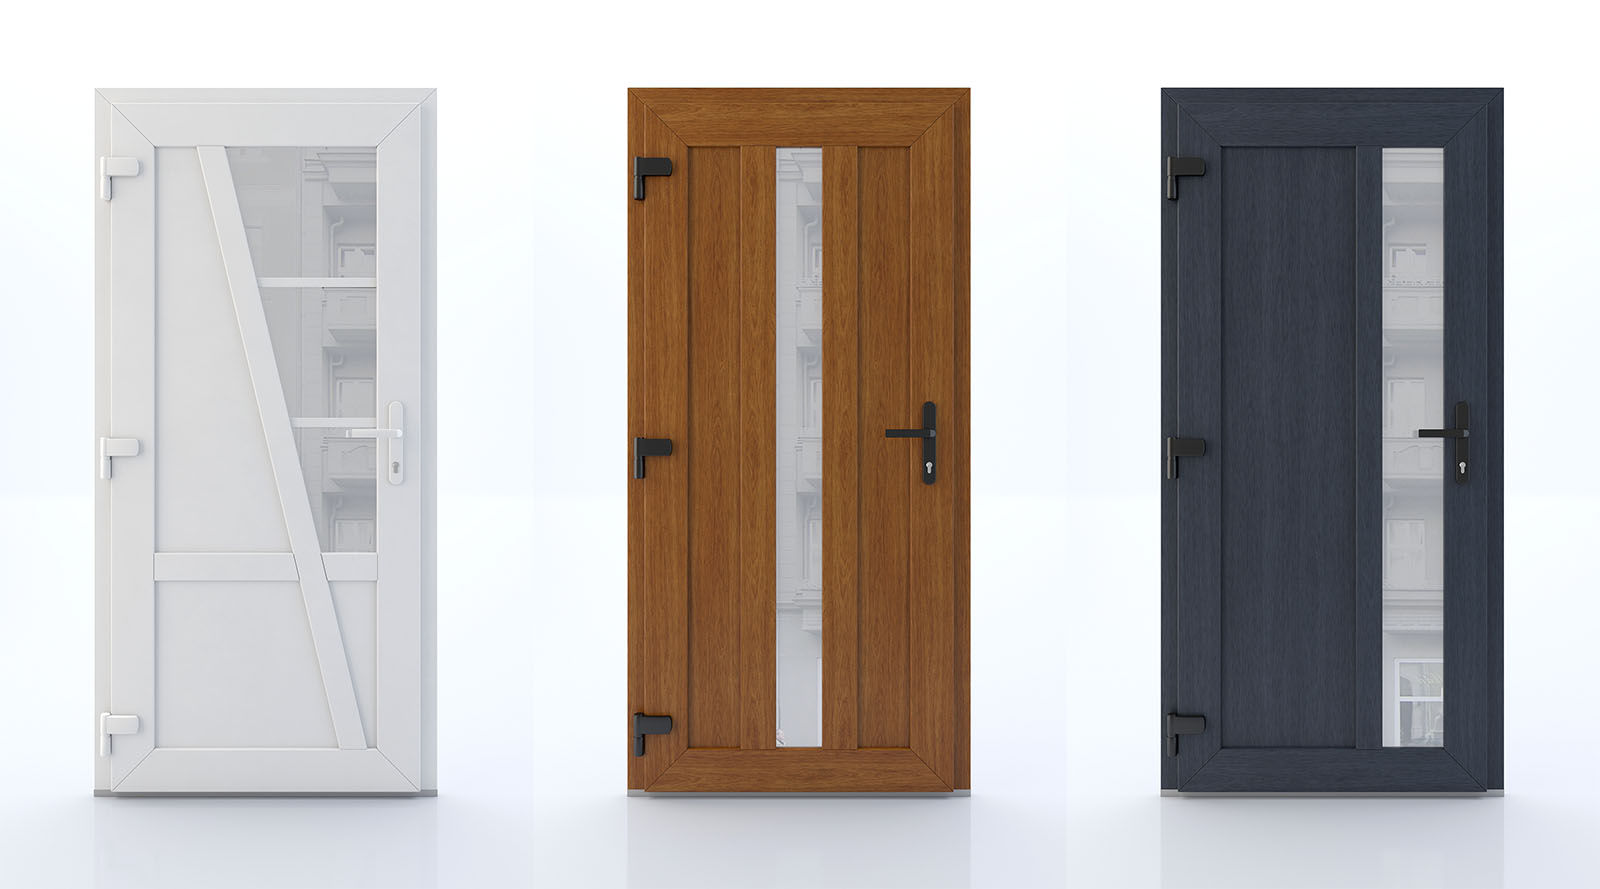 Product visualizations of scandinavian style doors